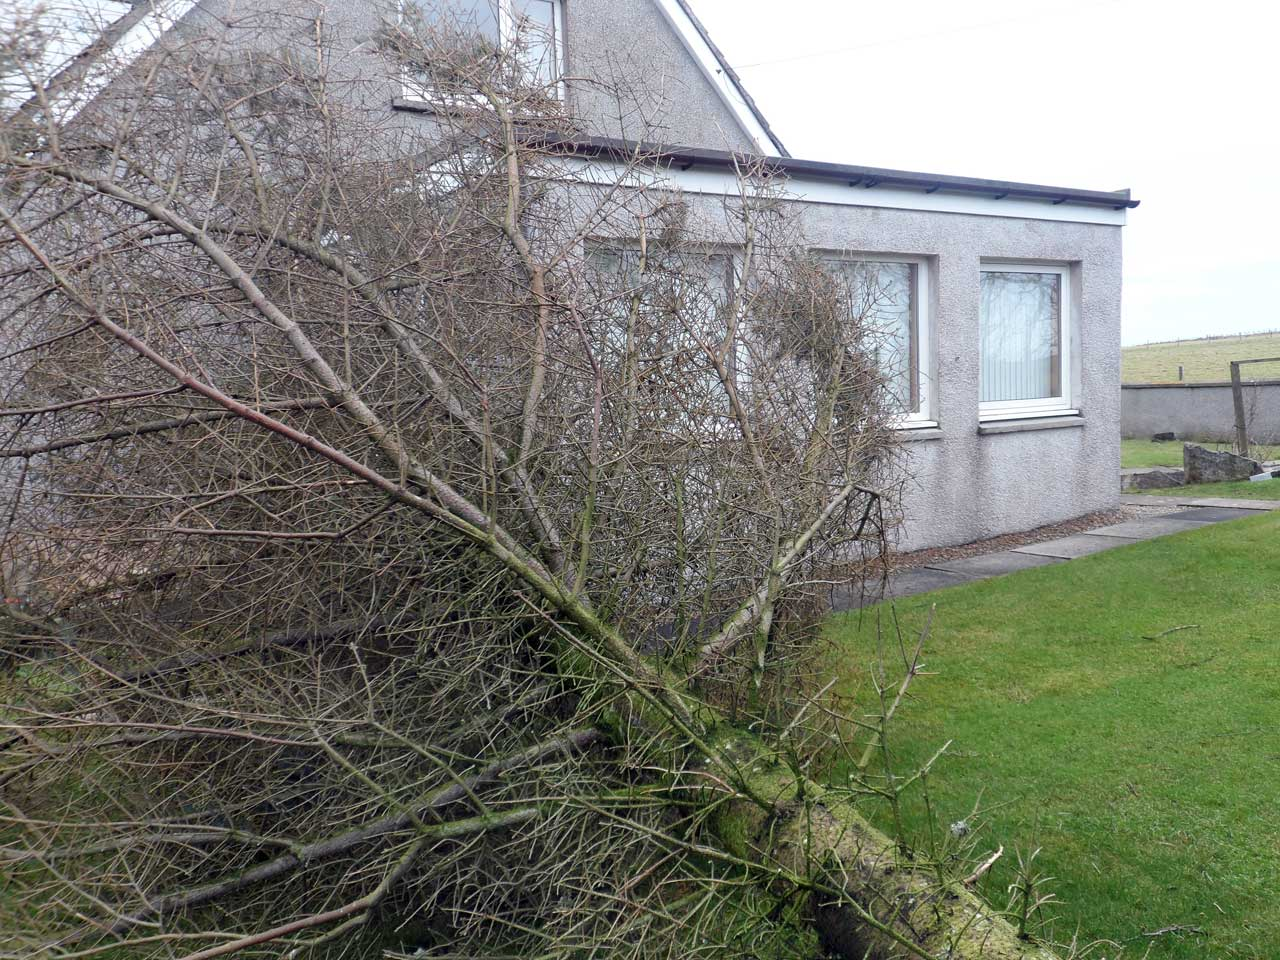 Photo: Tree blown down at March Road, Wick